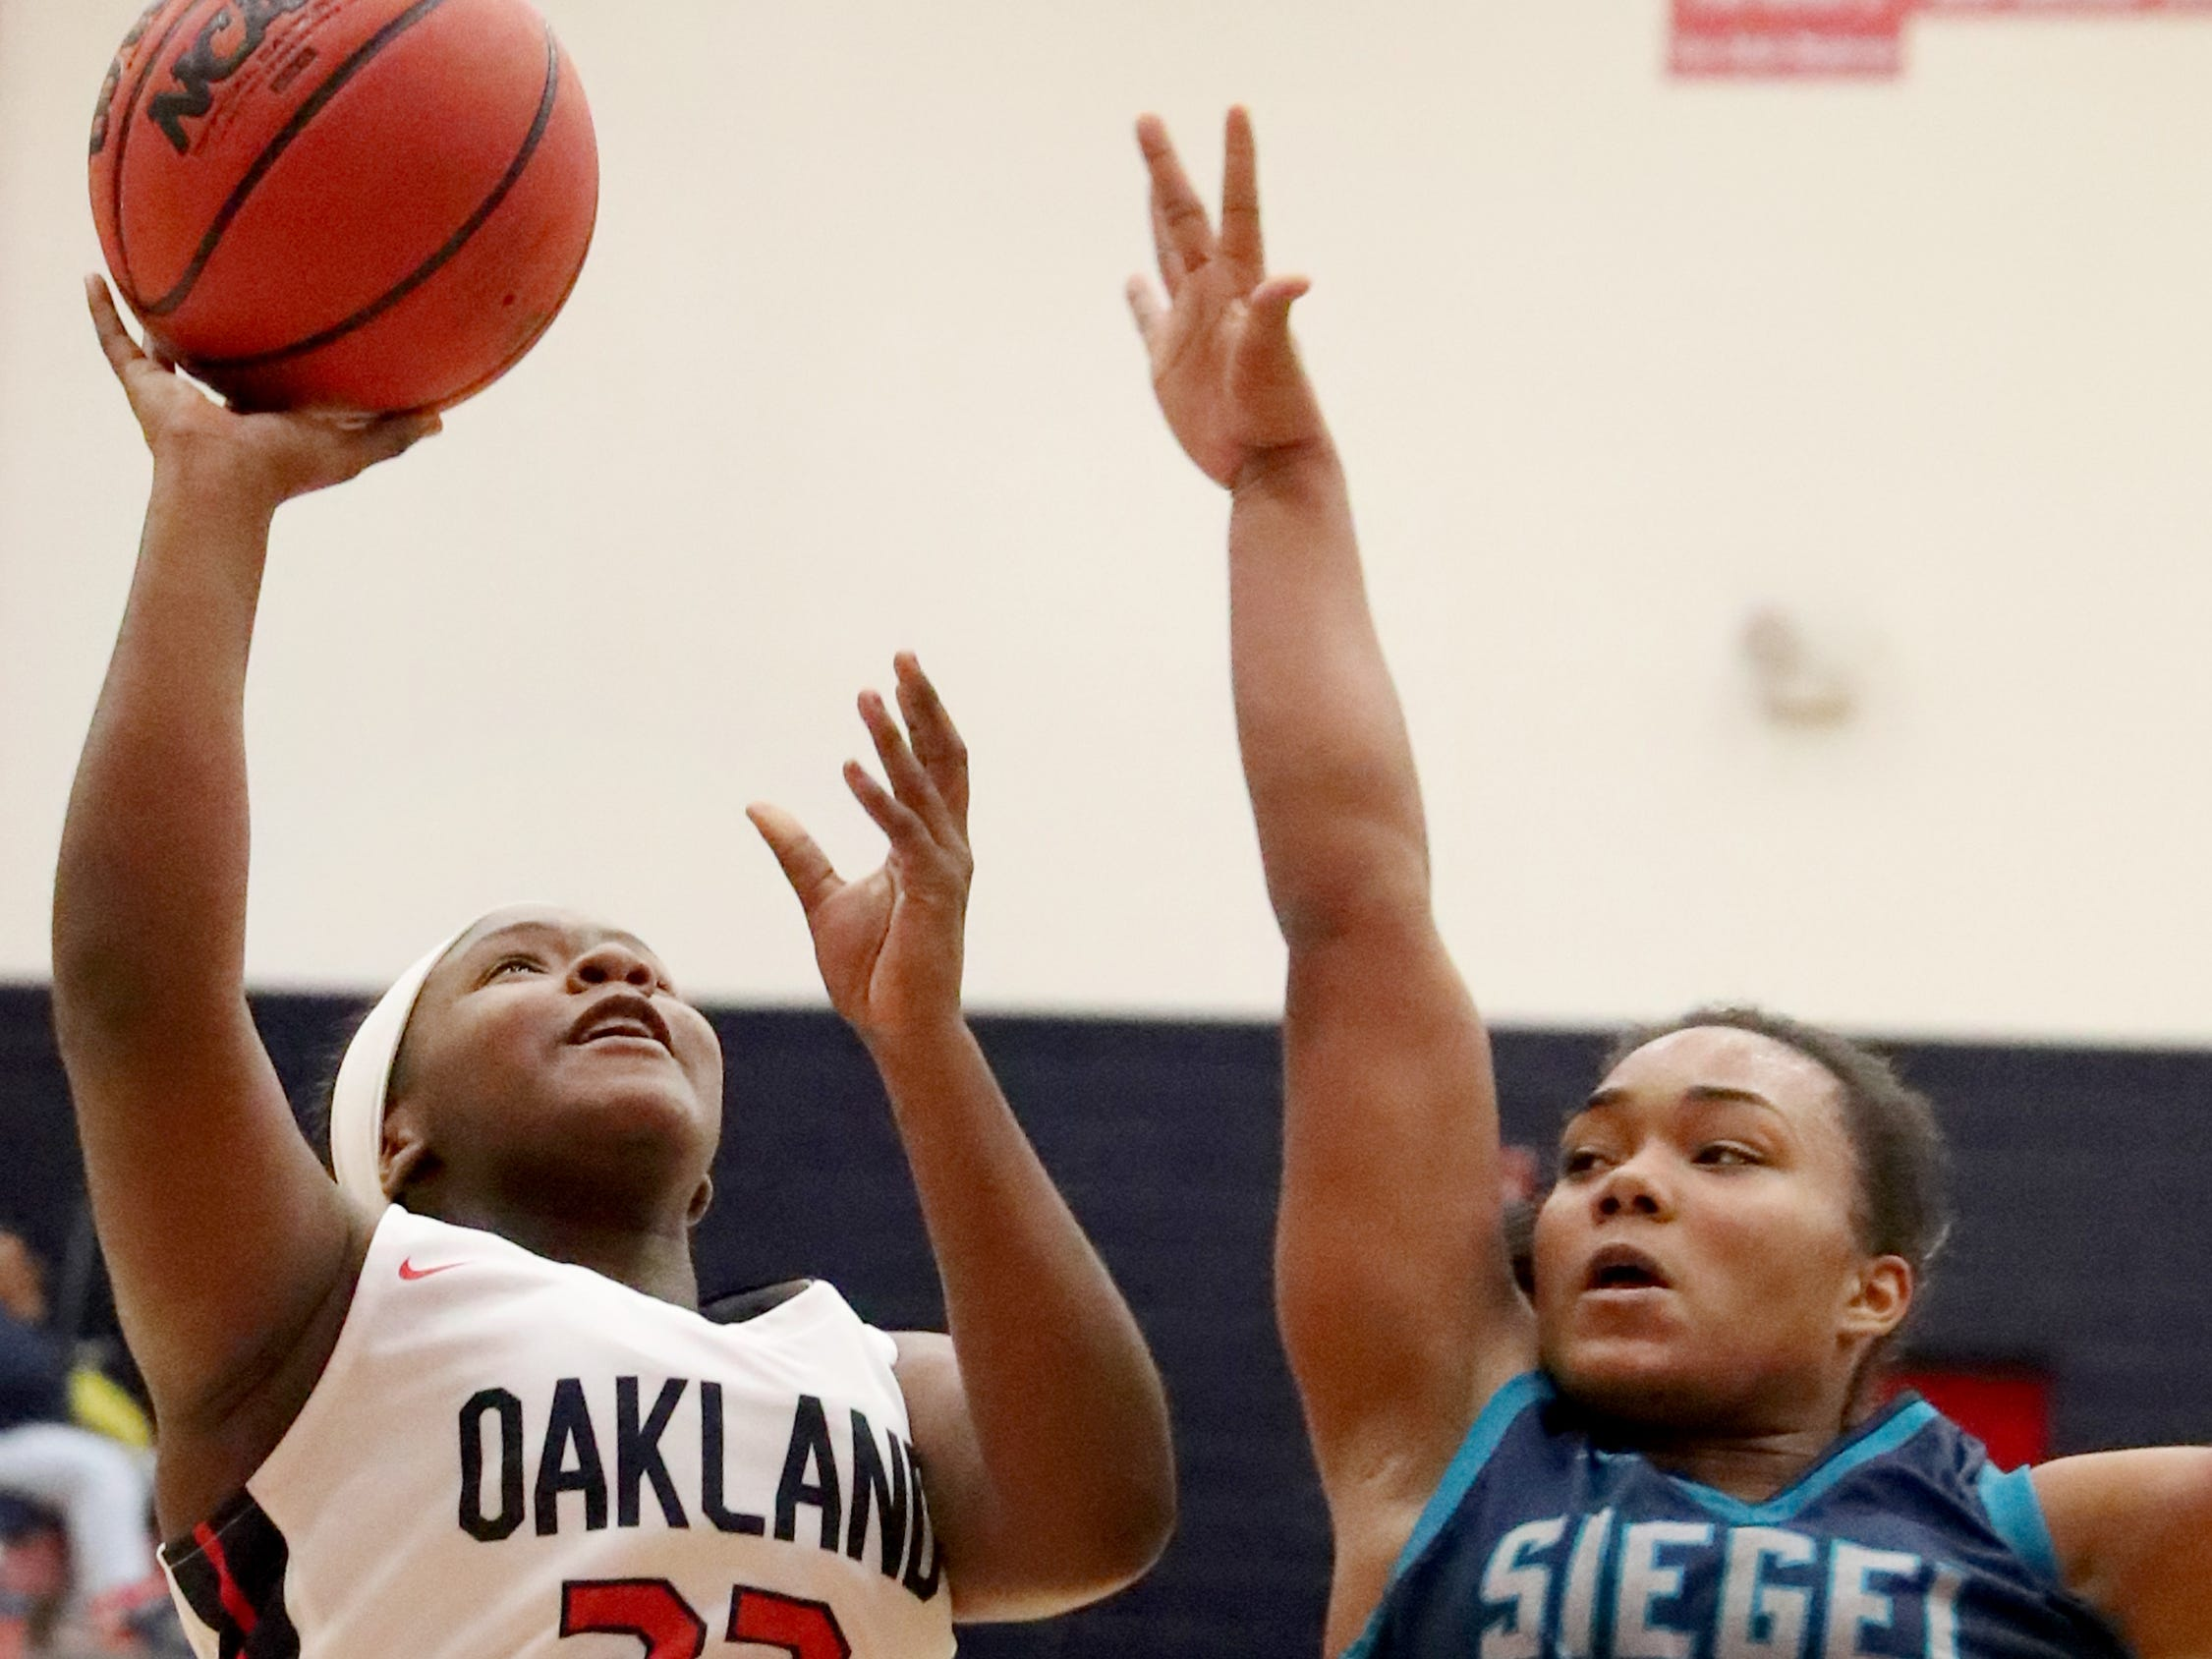 Oakland's Erykah Collier (32) shoots the ball as Siegel's Serenity Lillard (23) guards her during the game at Oakland on Tuesday, Dec.. 4, 2018.